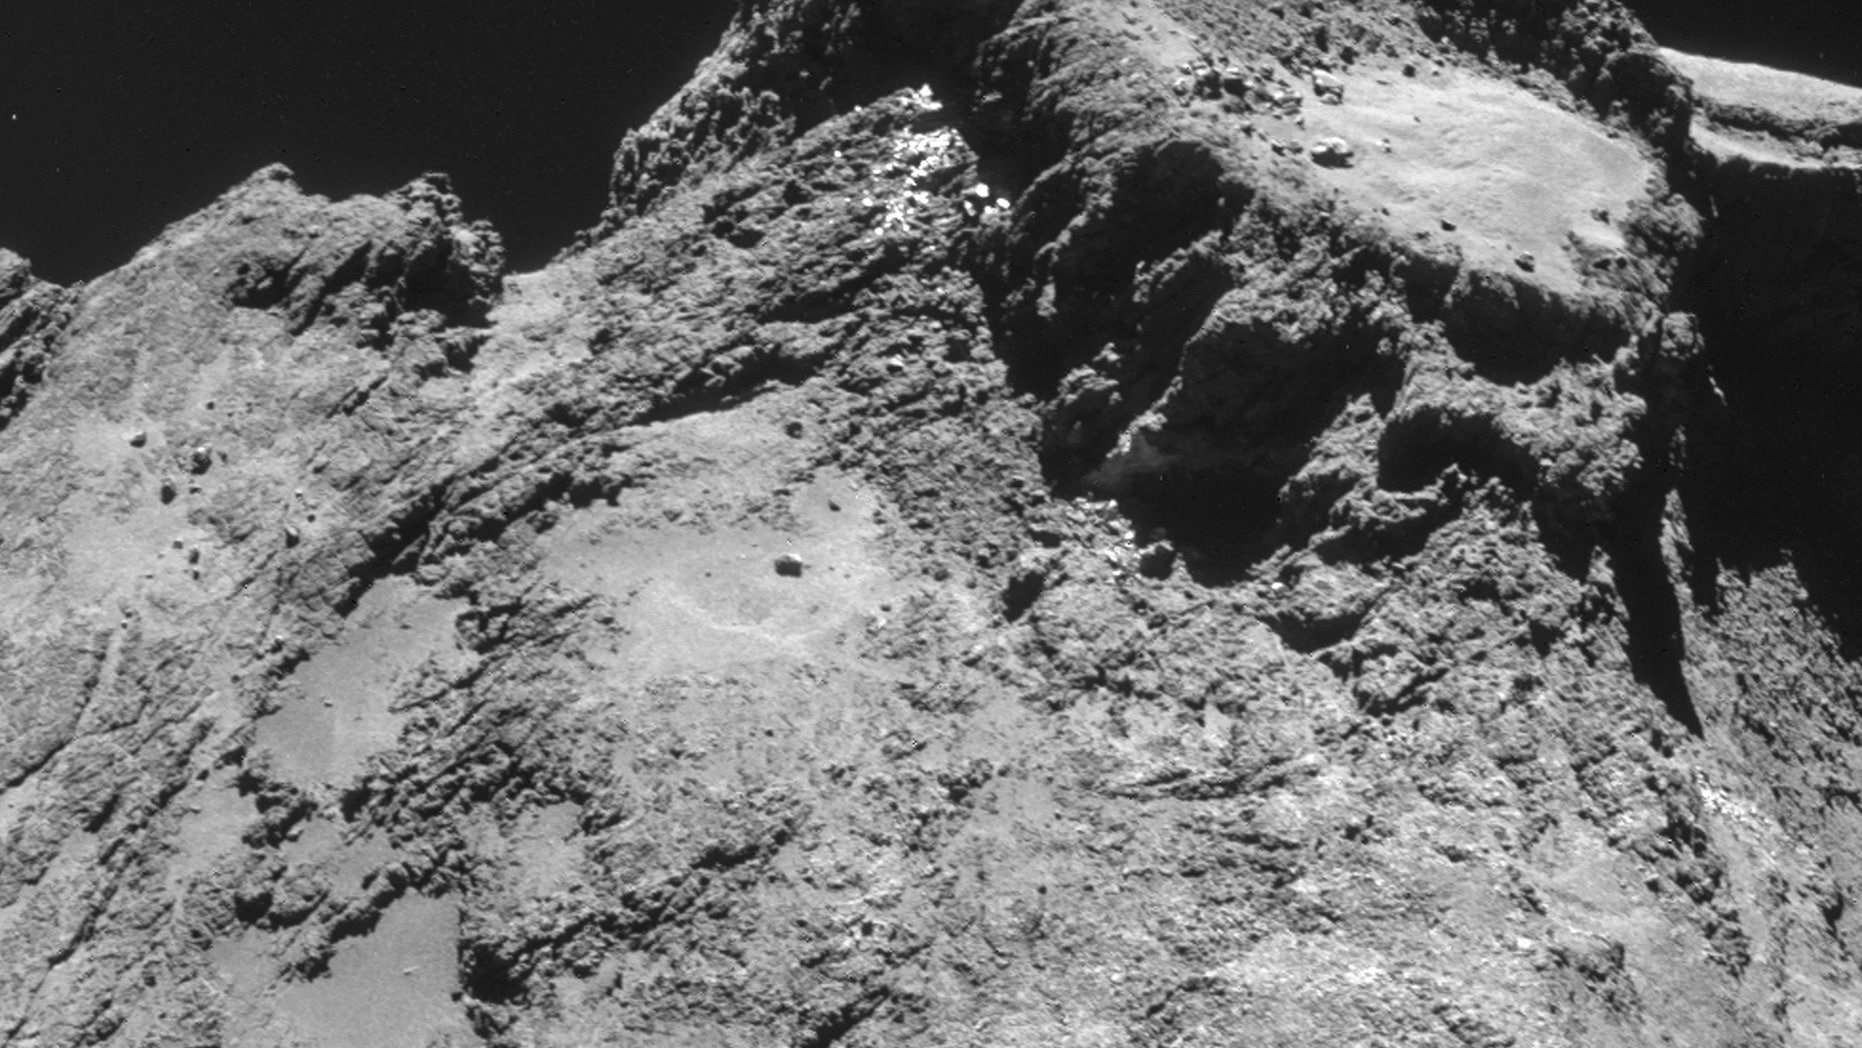 Oct. 24, 2014: The picture taken with the navigation camera on Rosetta and released by the European Space Agency ESA shows a raised plateau on the larger lobe of Comet 67P/Churyumov–Gerasimenko.